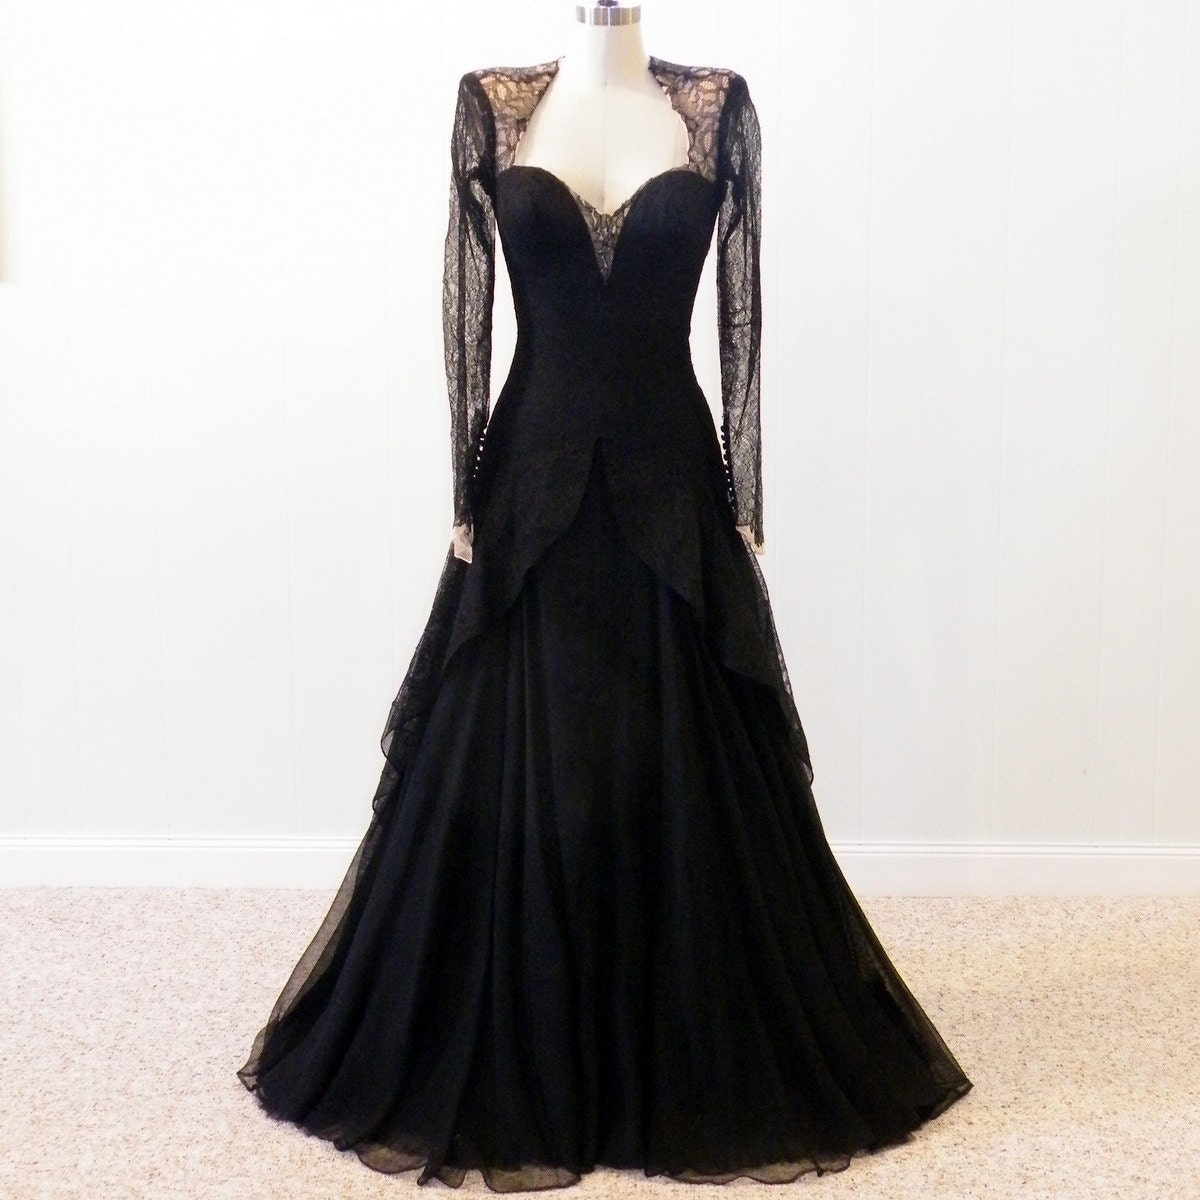 1940s Dressing Gown: 1940s Evening Gown 40s Black Lace Silk Designer Dress